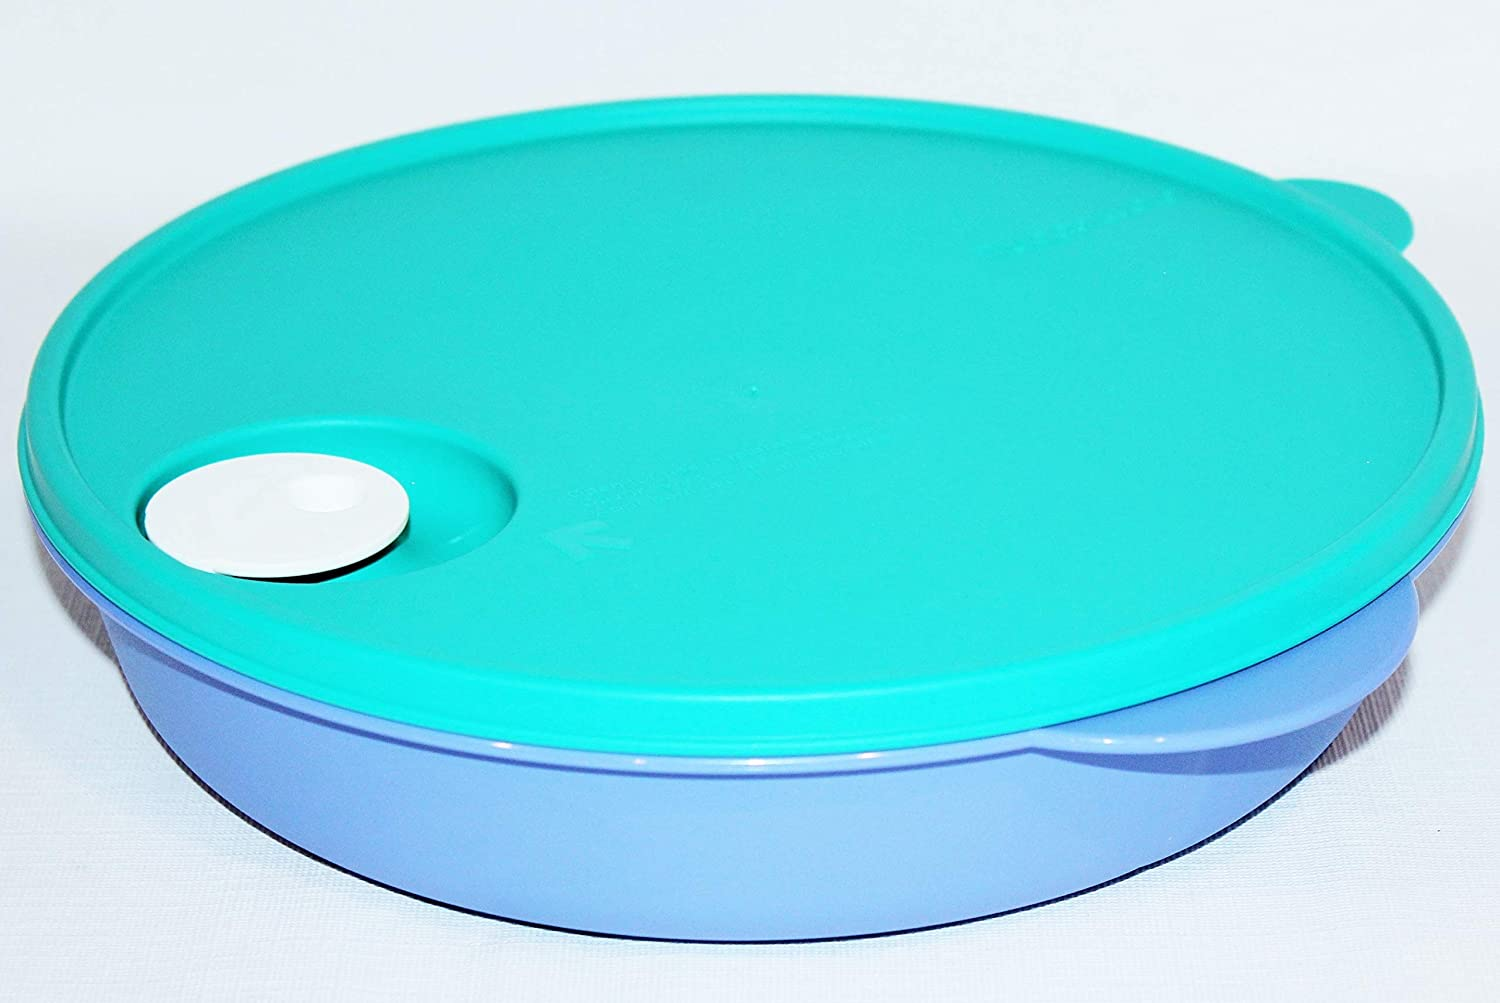 Amazon.com: Tupperware crystalwave dividido Plato de postre ...